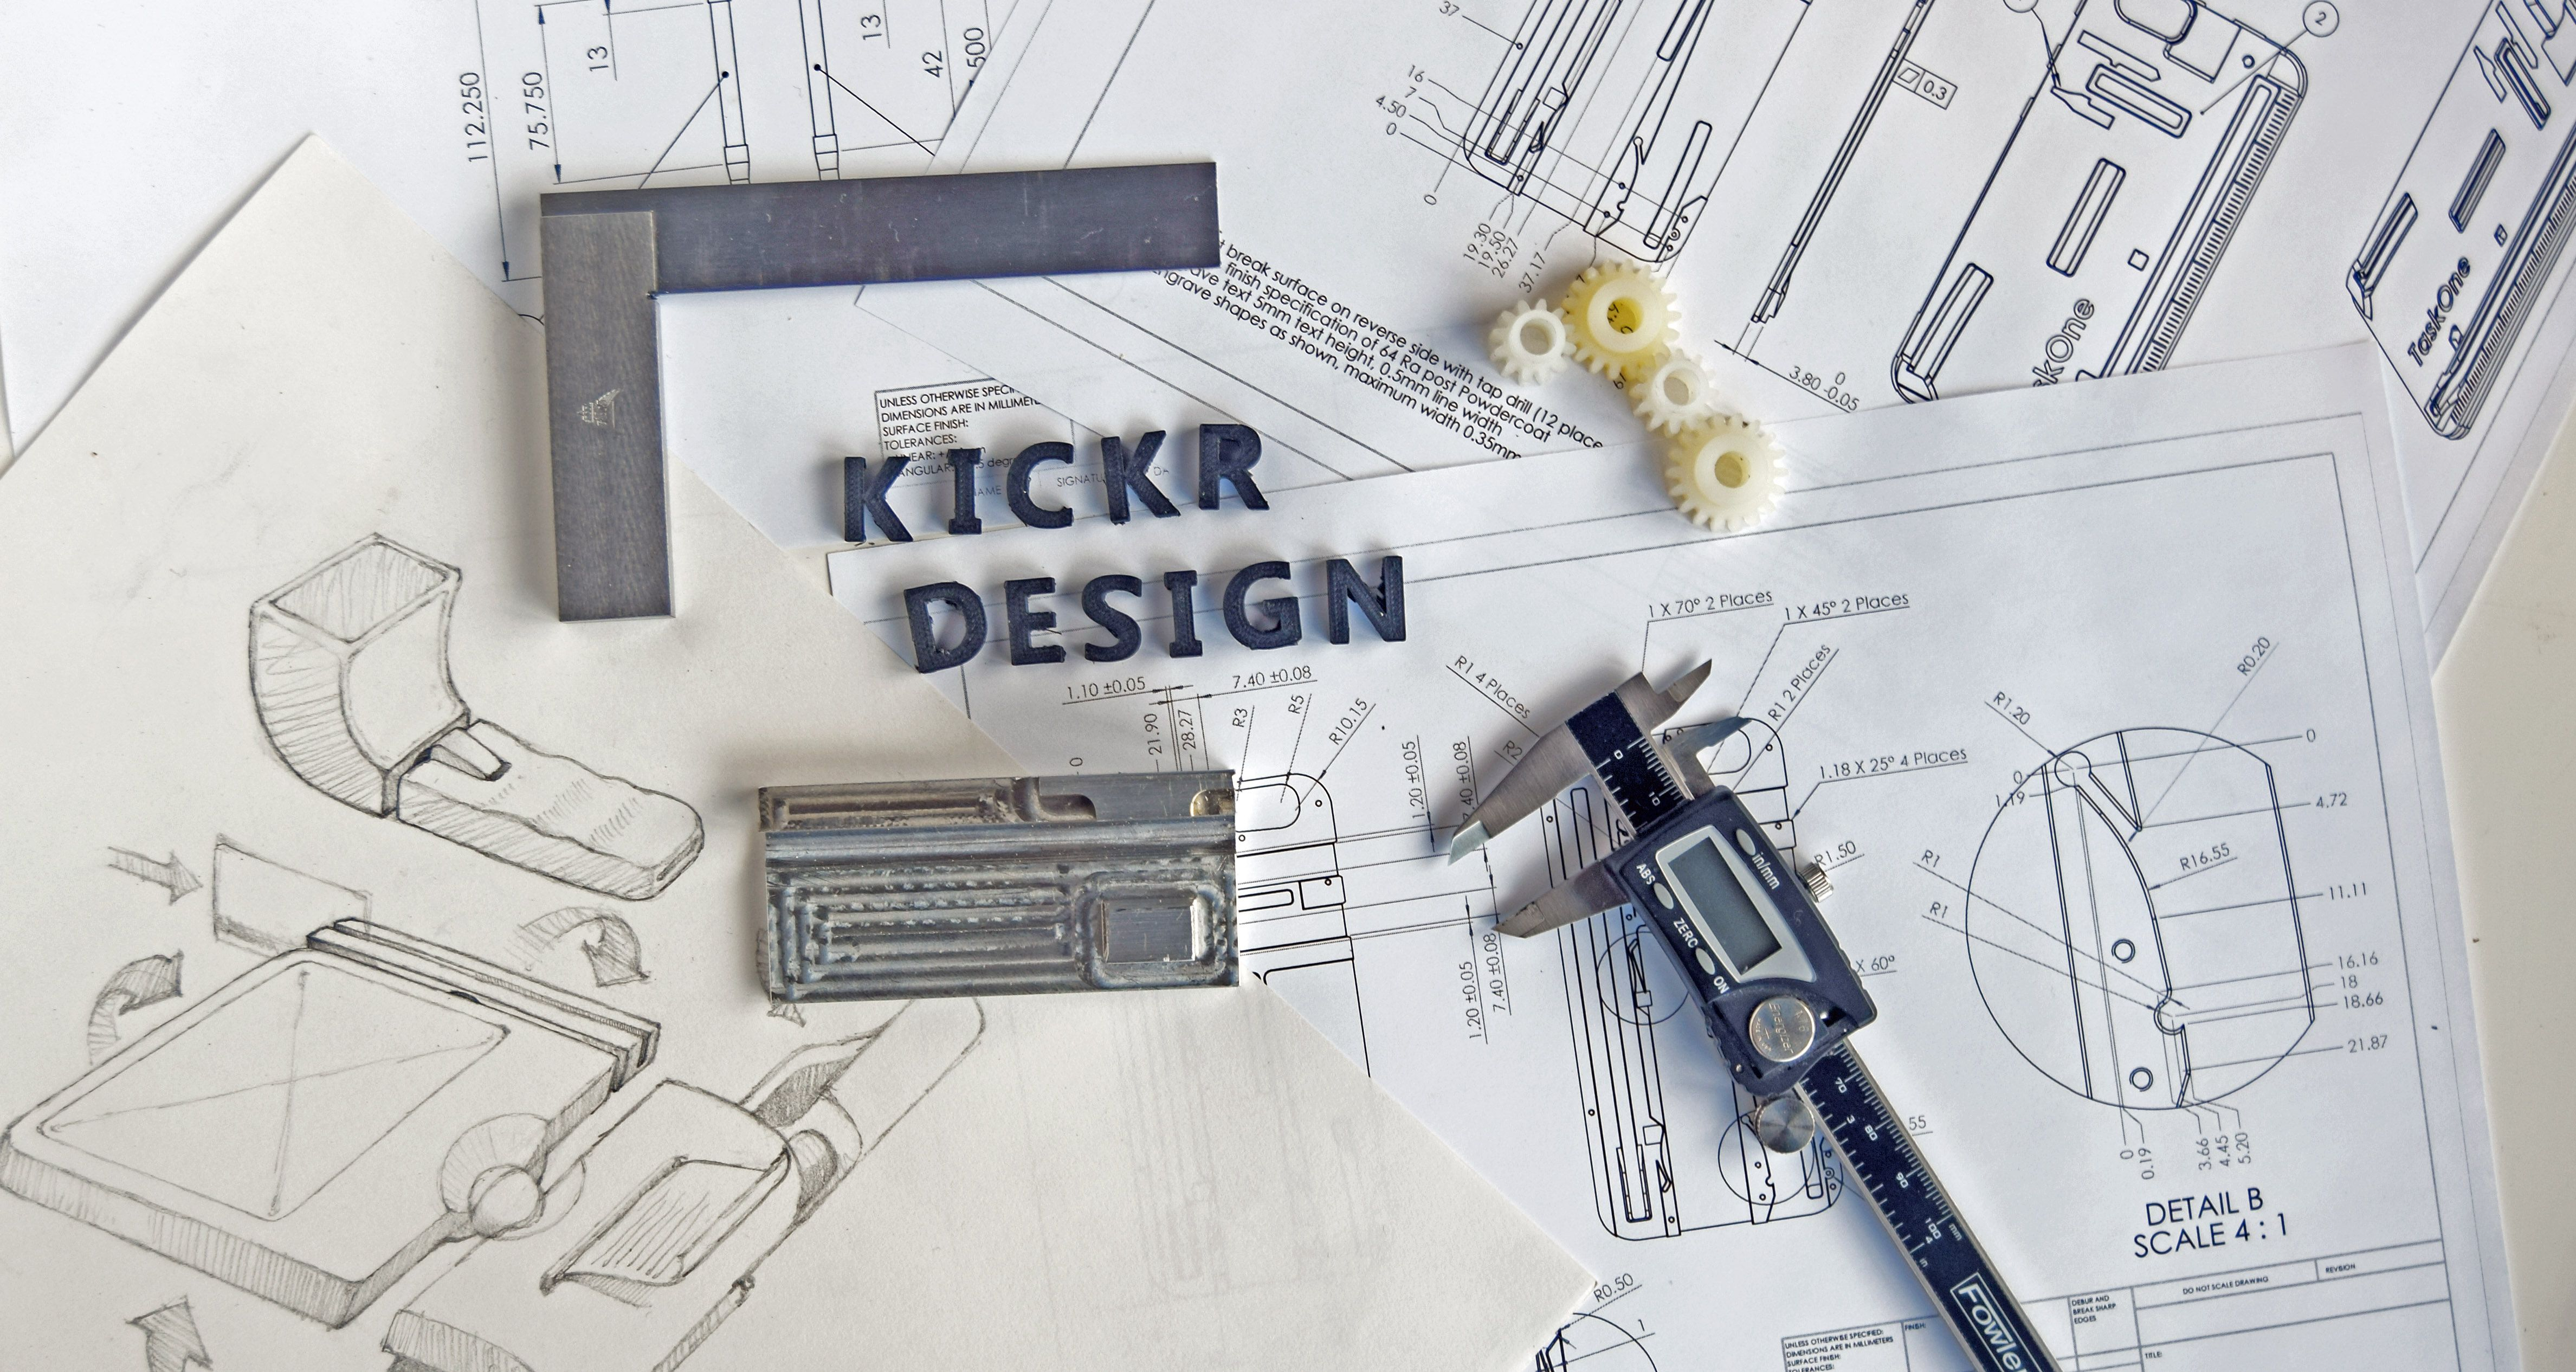 Kickr Design - We design, engineer, prototype and manufacture your ...